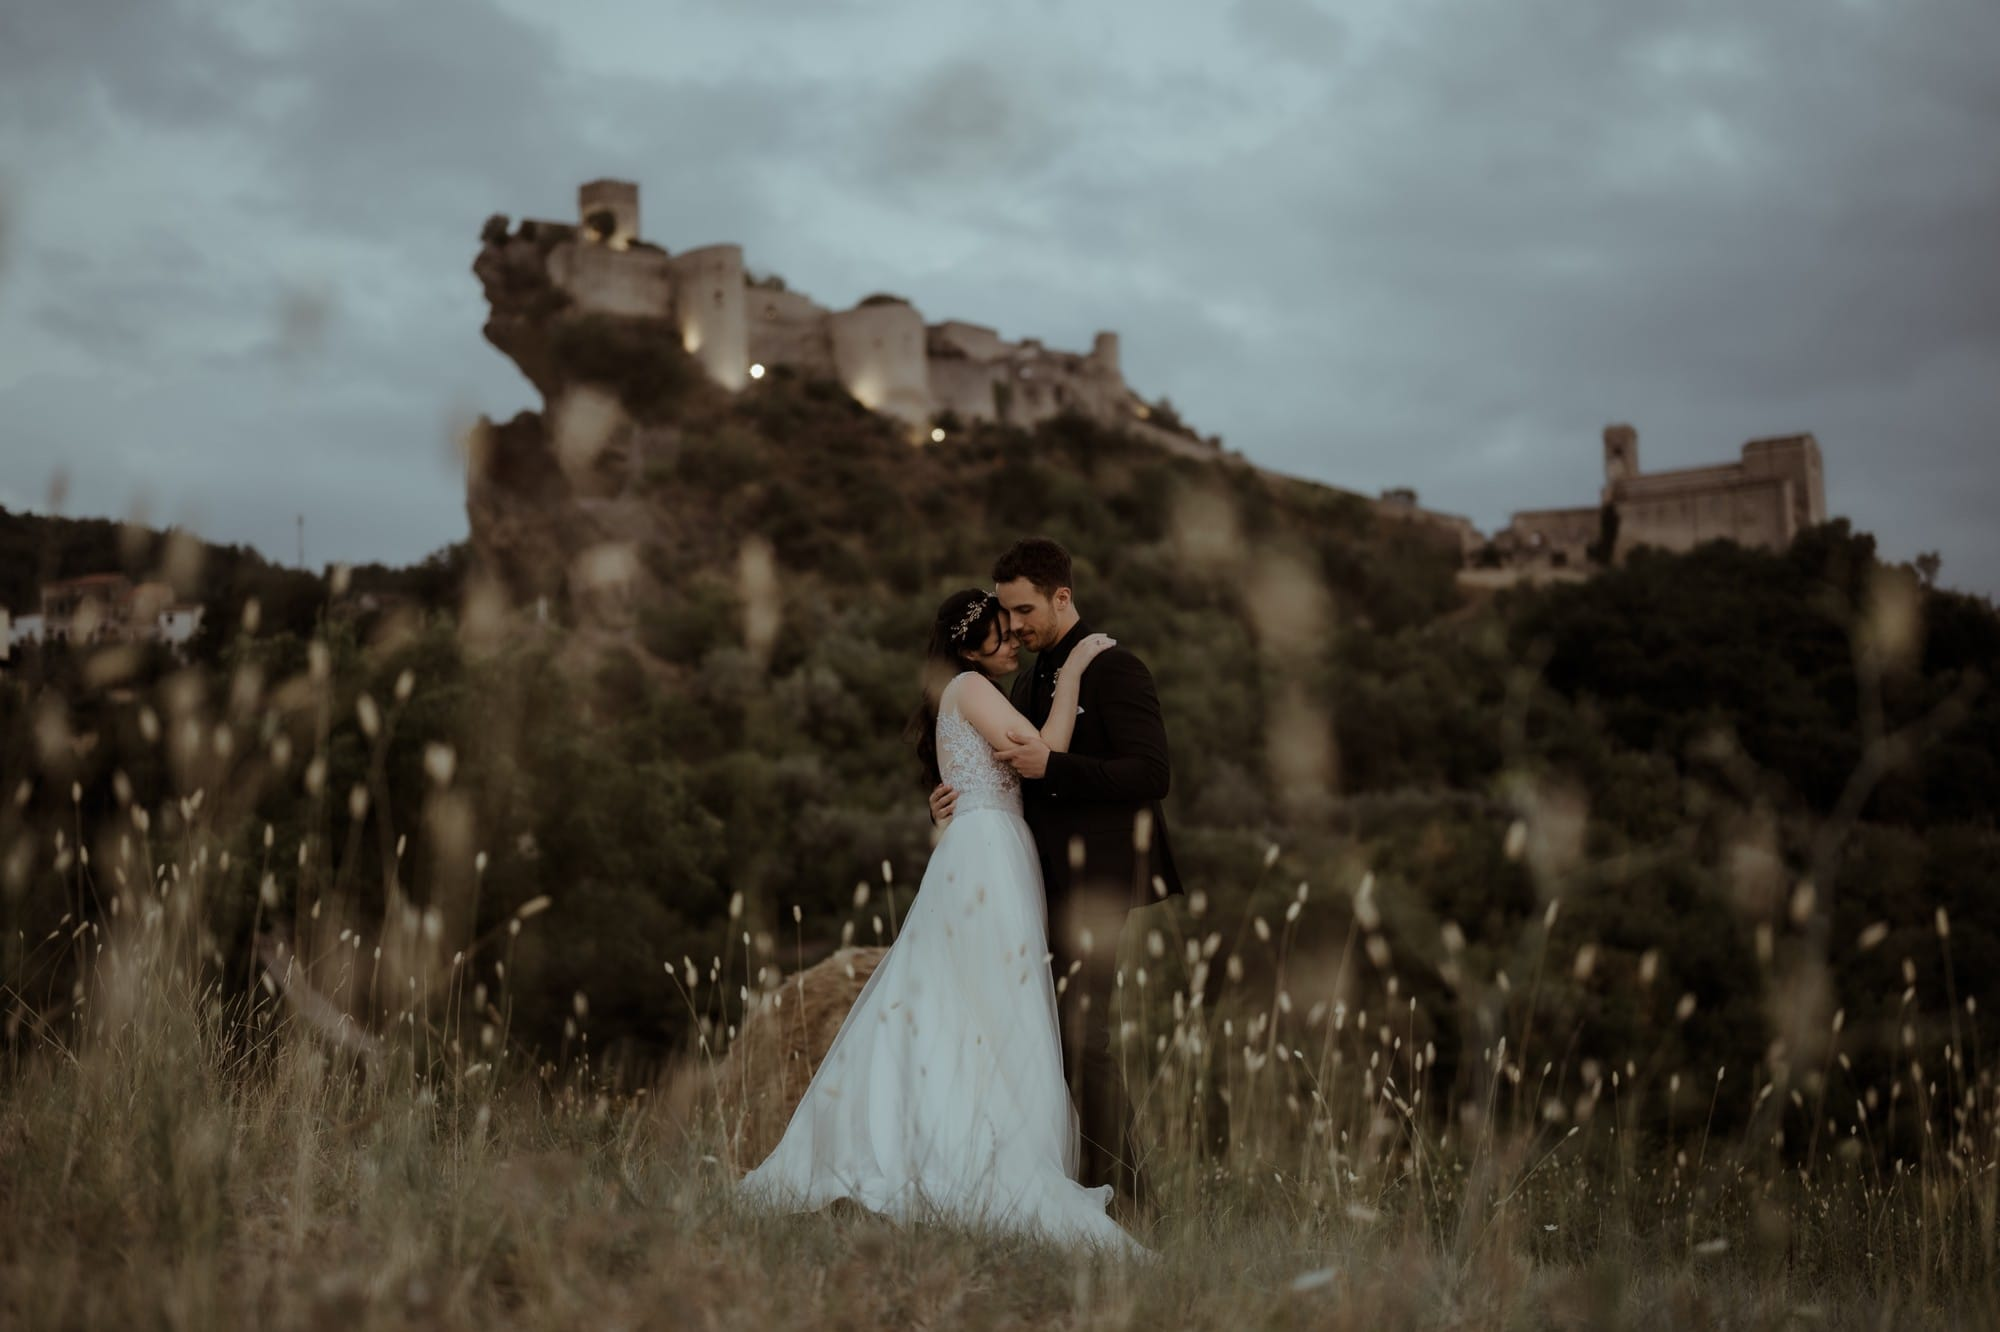 Couple eloping in field at Roccascalegna Castle